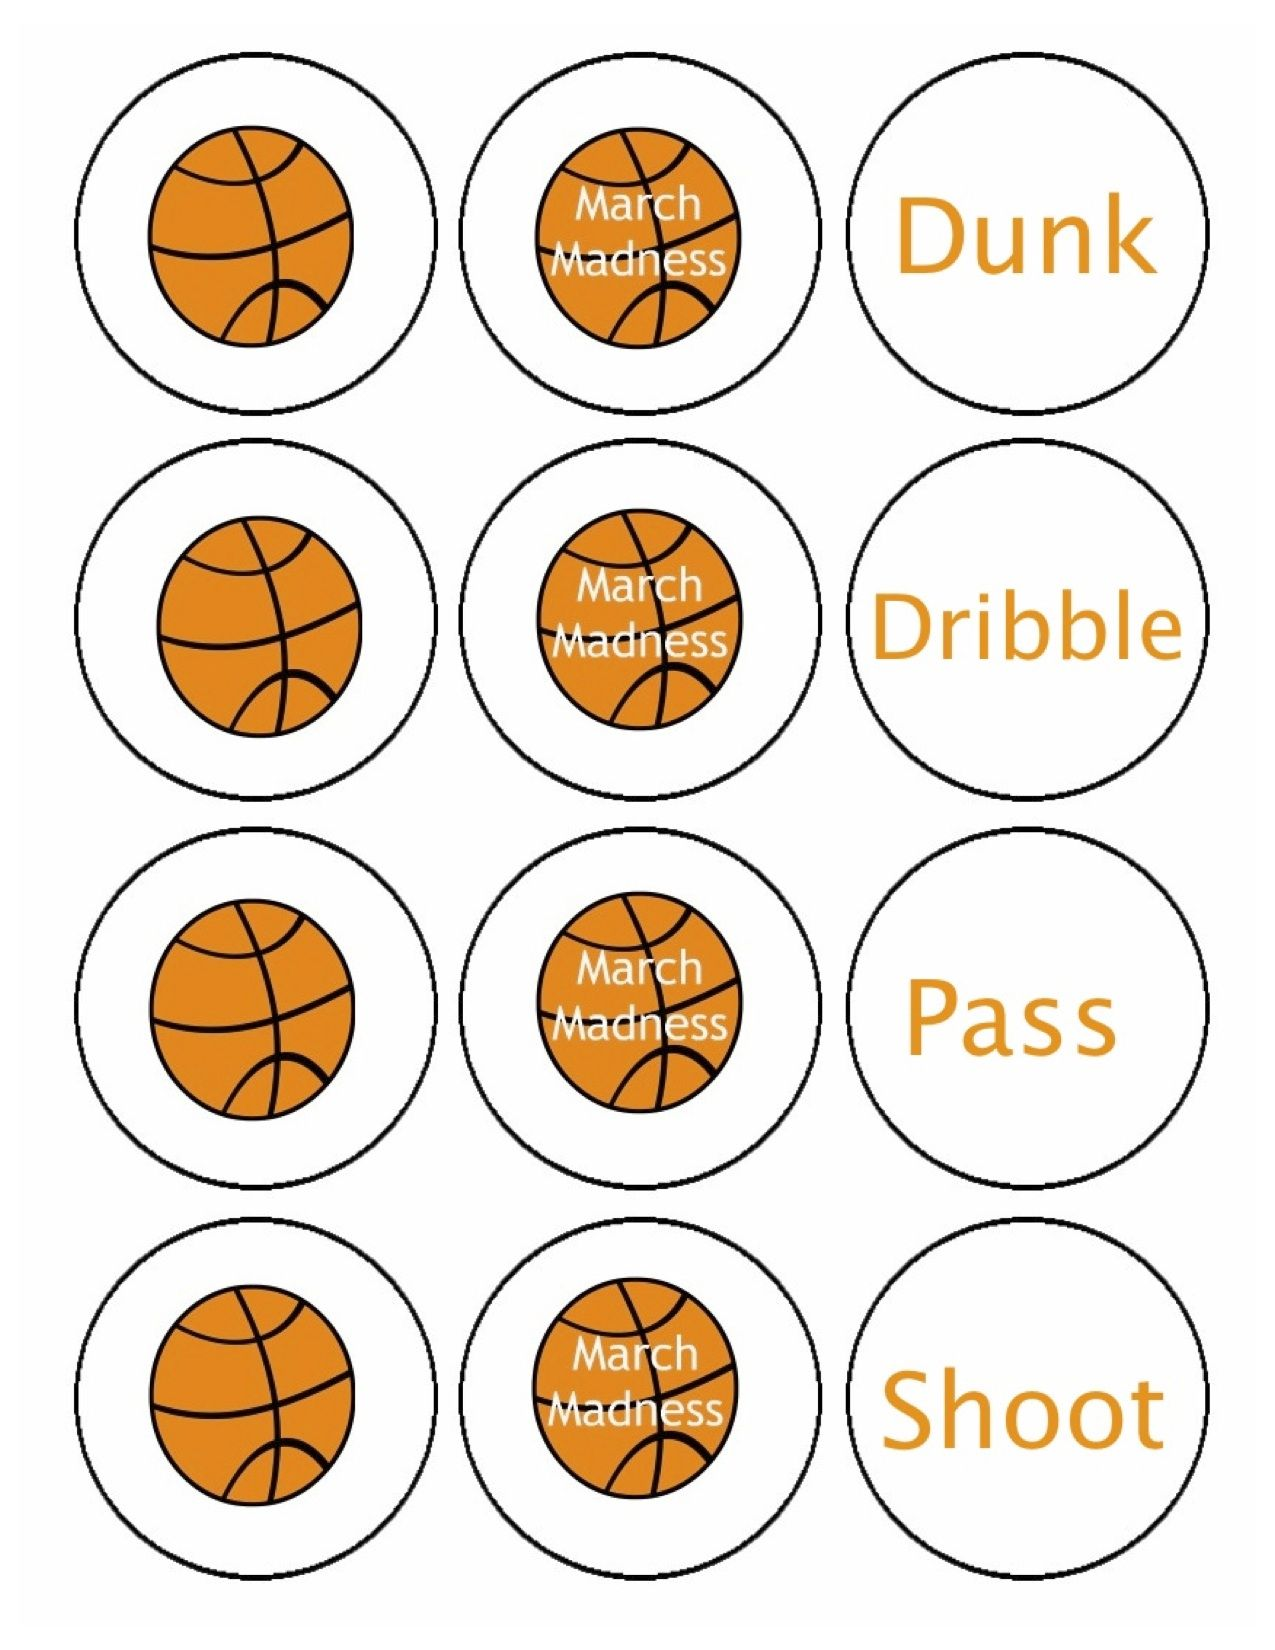 March Madness Decorations Printable